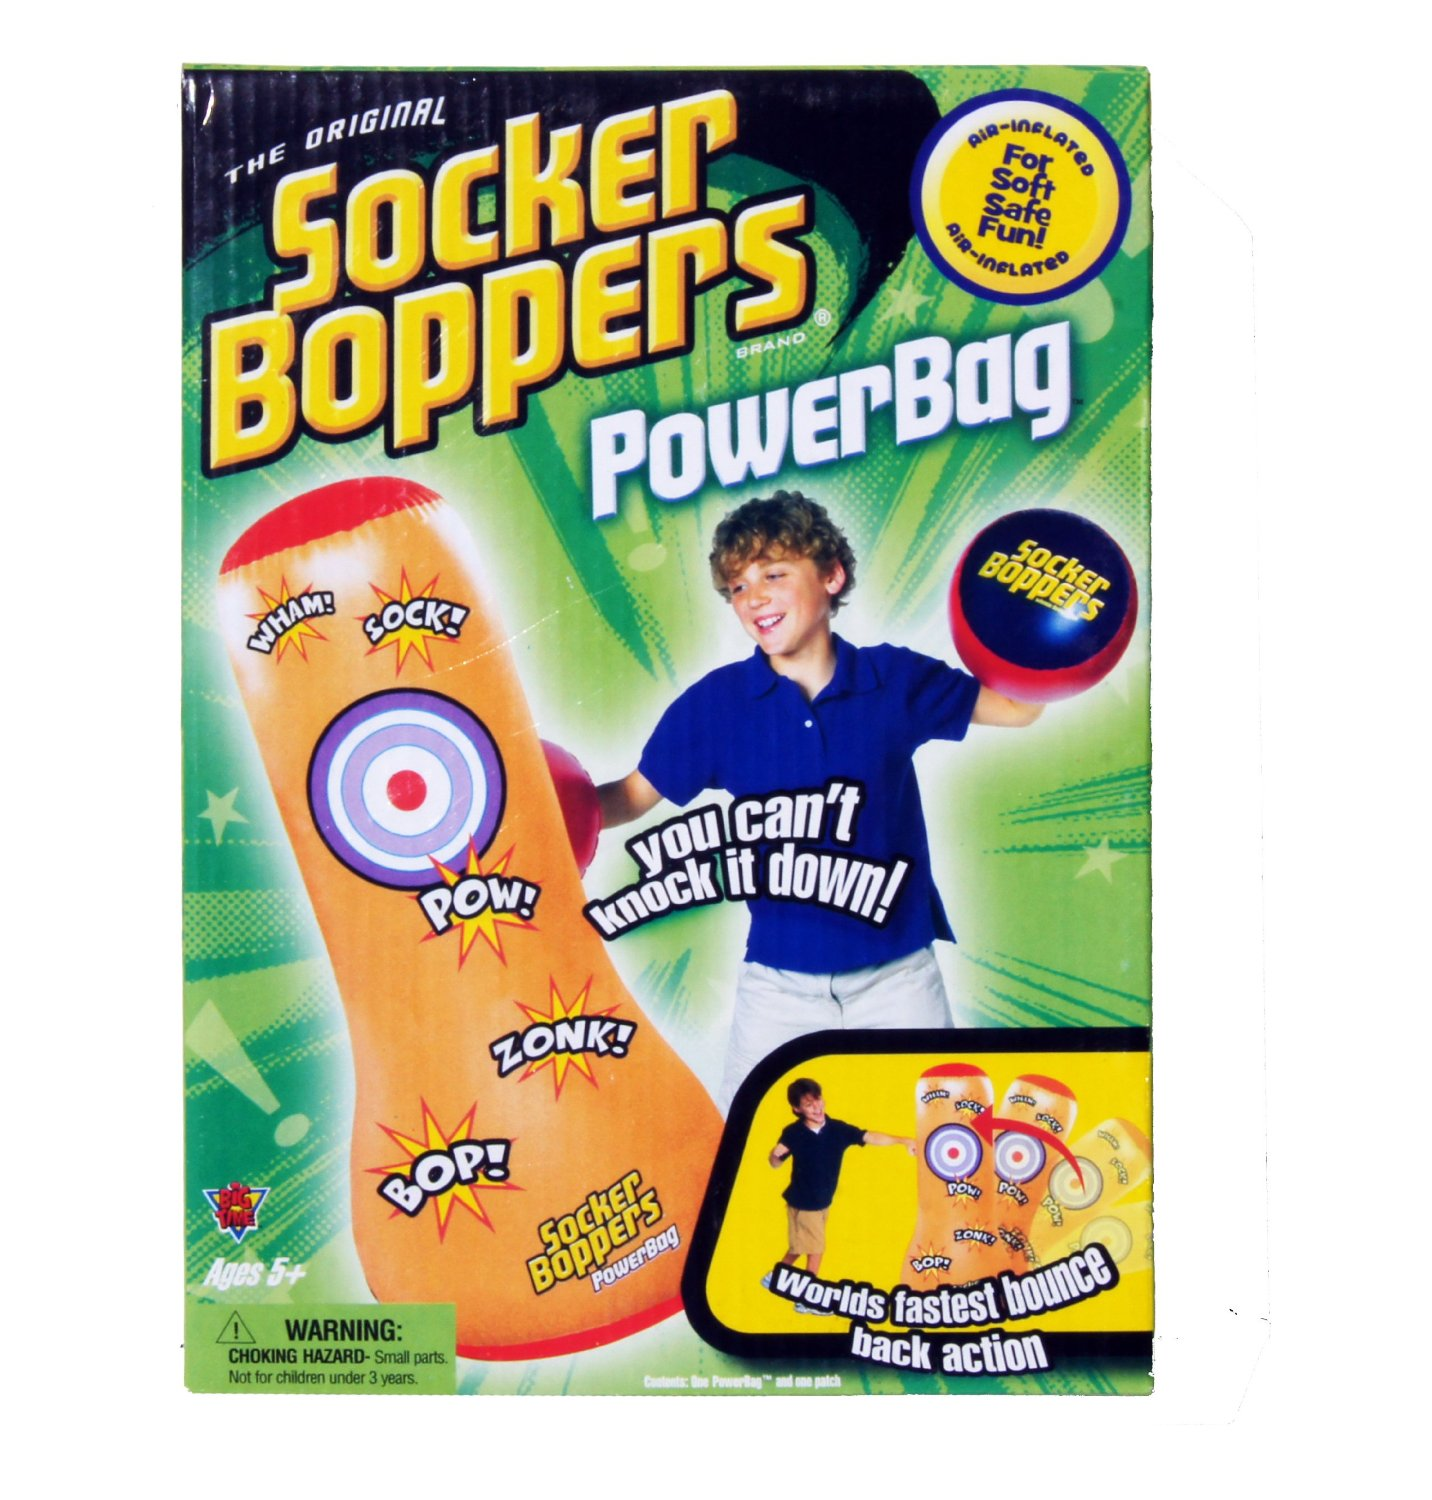 Socker Boppers Power Bag: Grand Rabbits Toys In Boulder